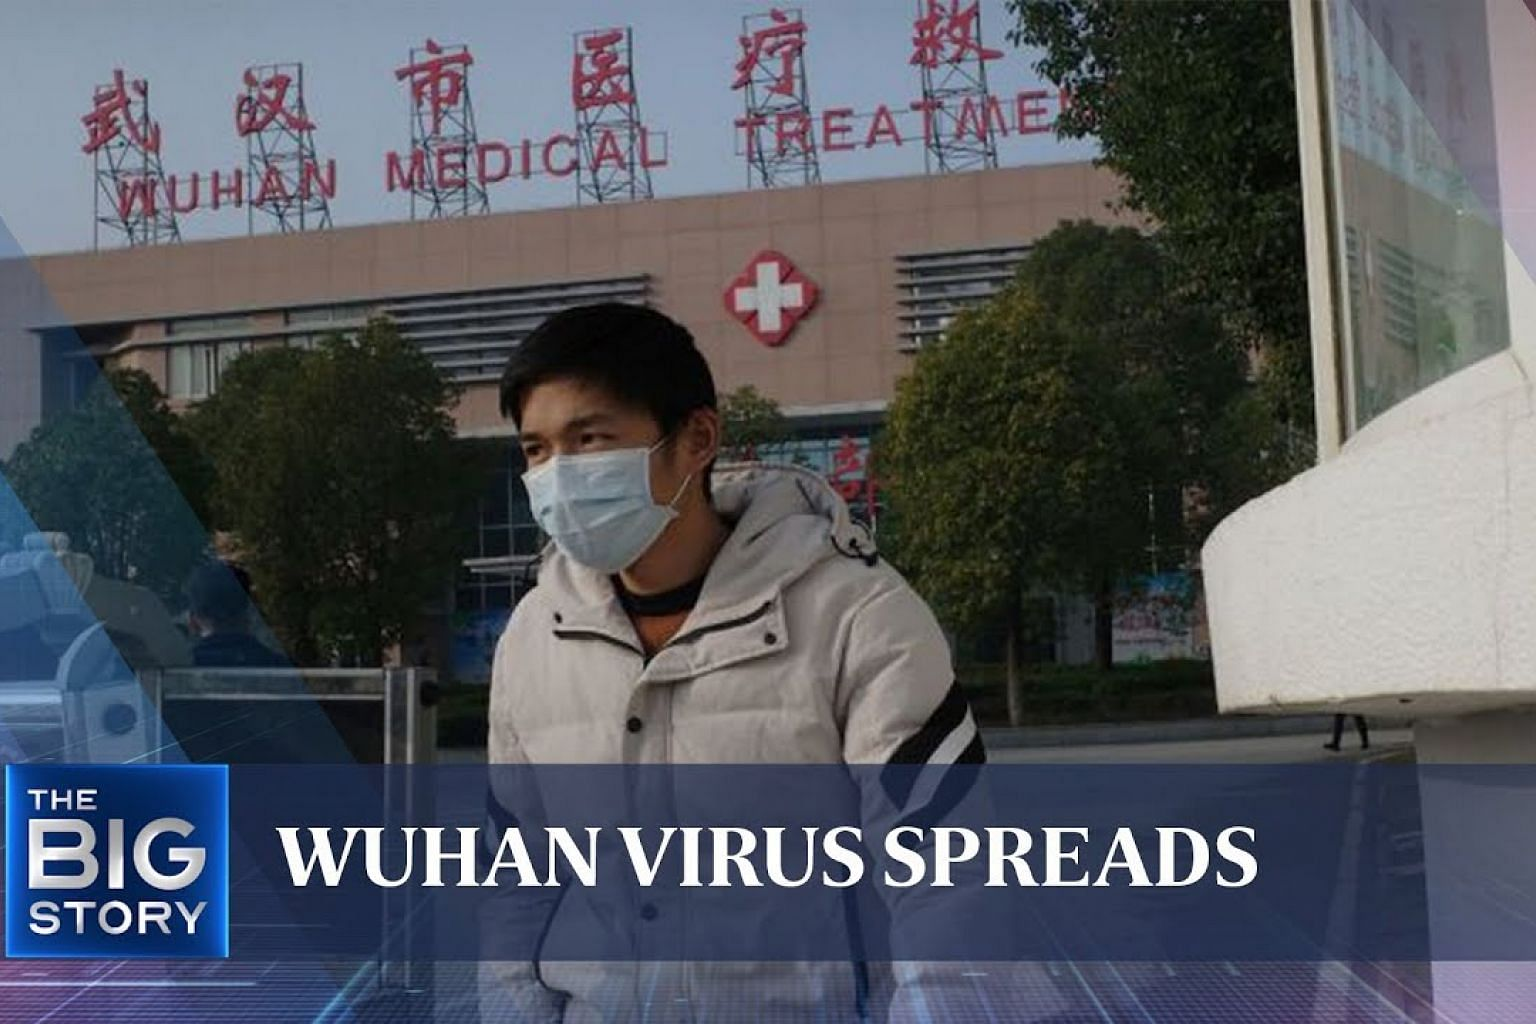 Wuhan virus: Sharp spike, spreads to other cities | THE BIG STORY | The Straits Times